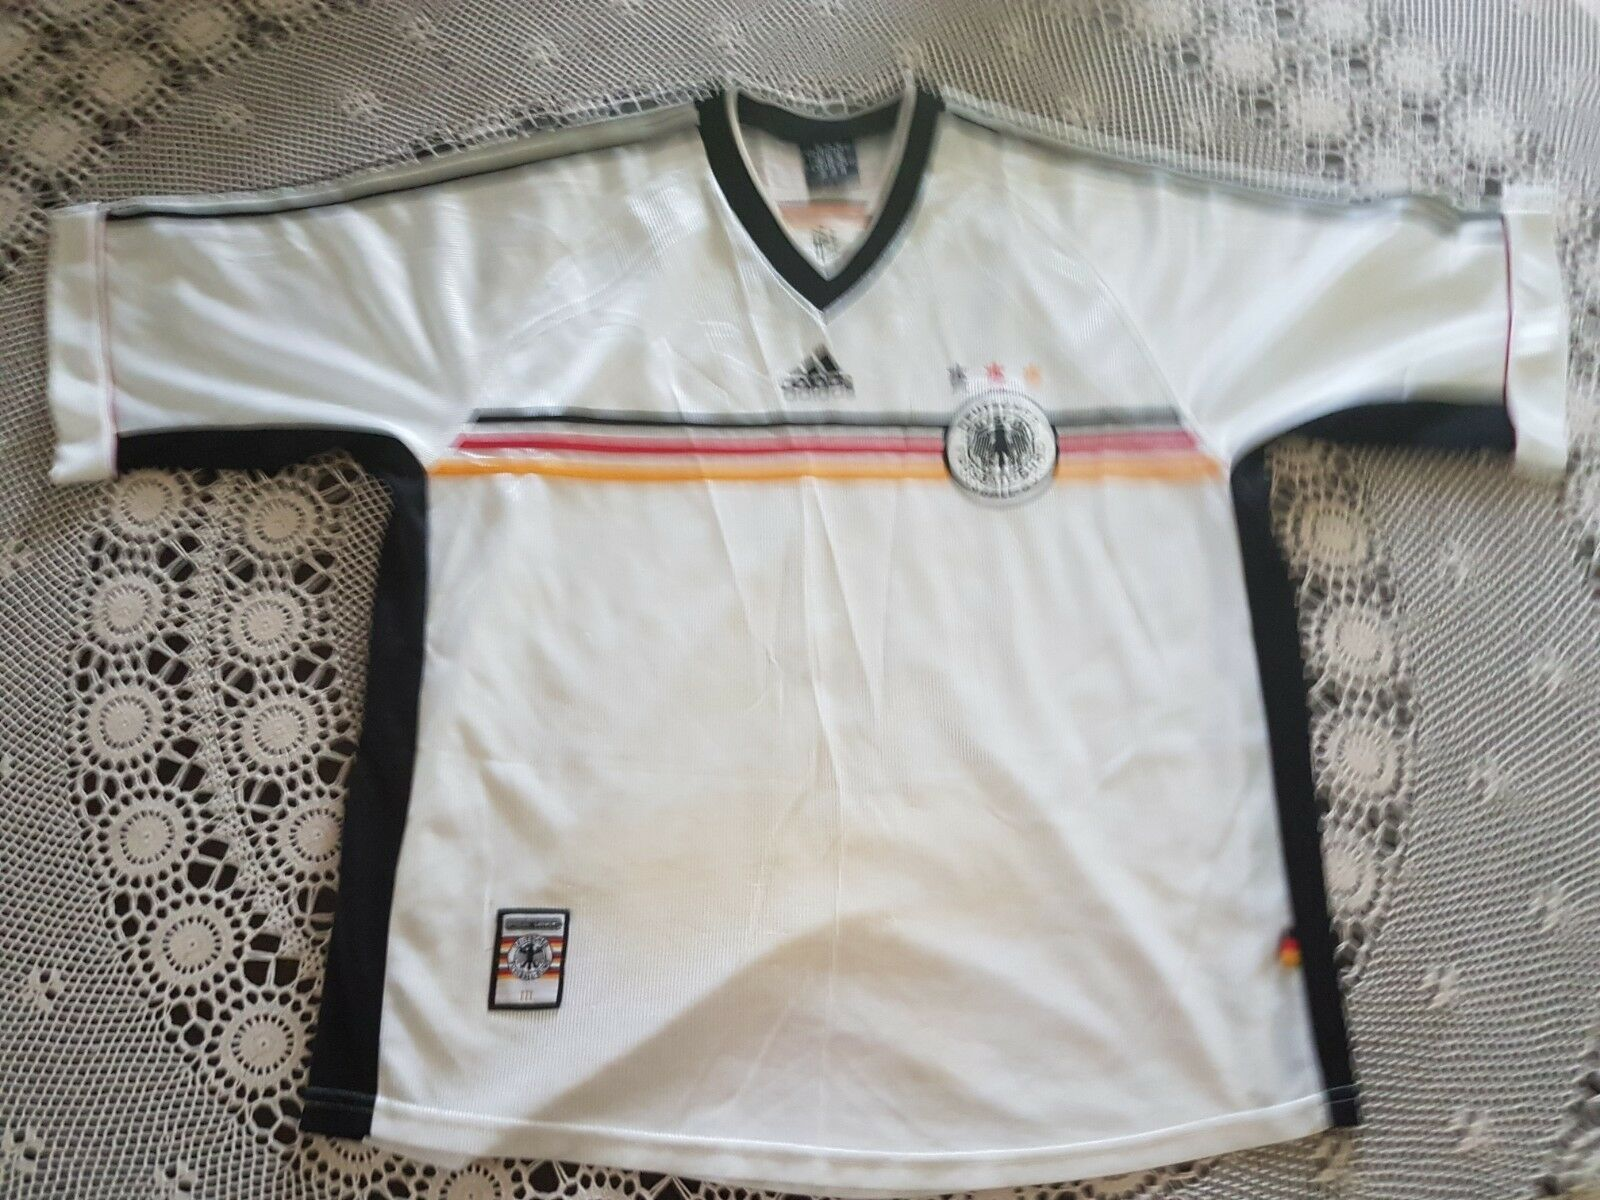 Germany 1998 home jersey x large size